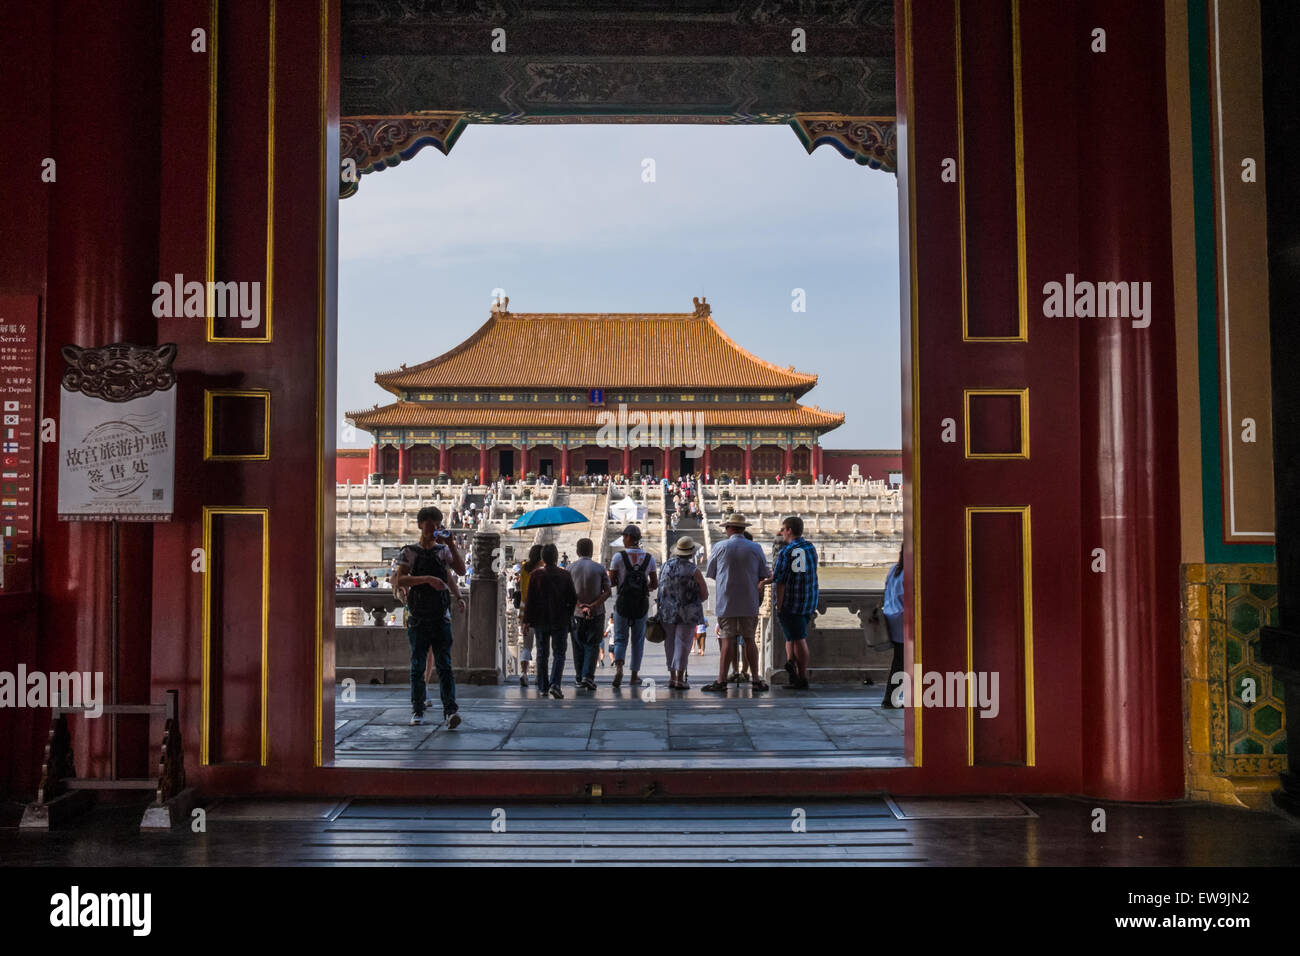 Tourists viewing hall seen through a door - Stock Image